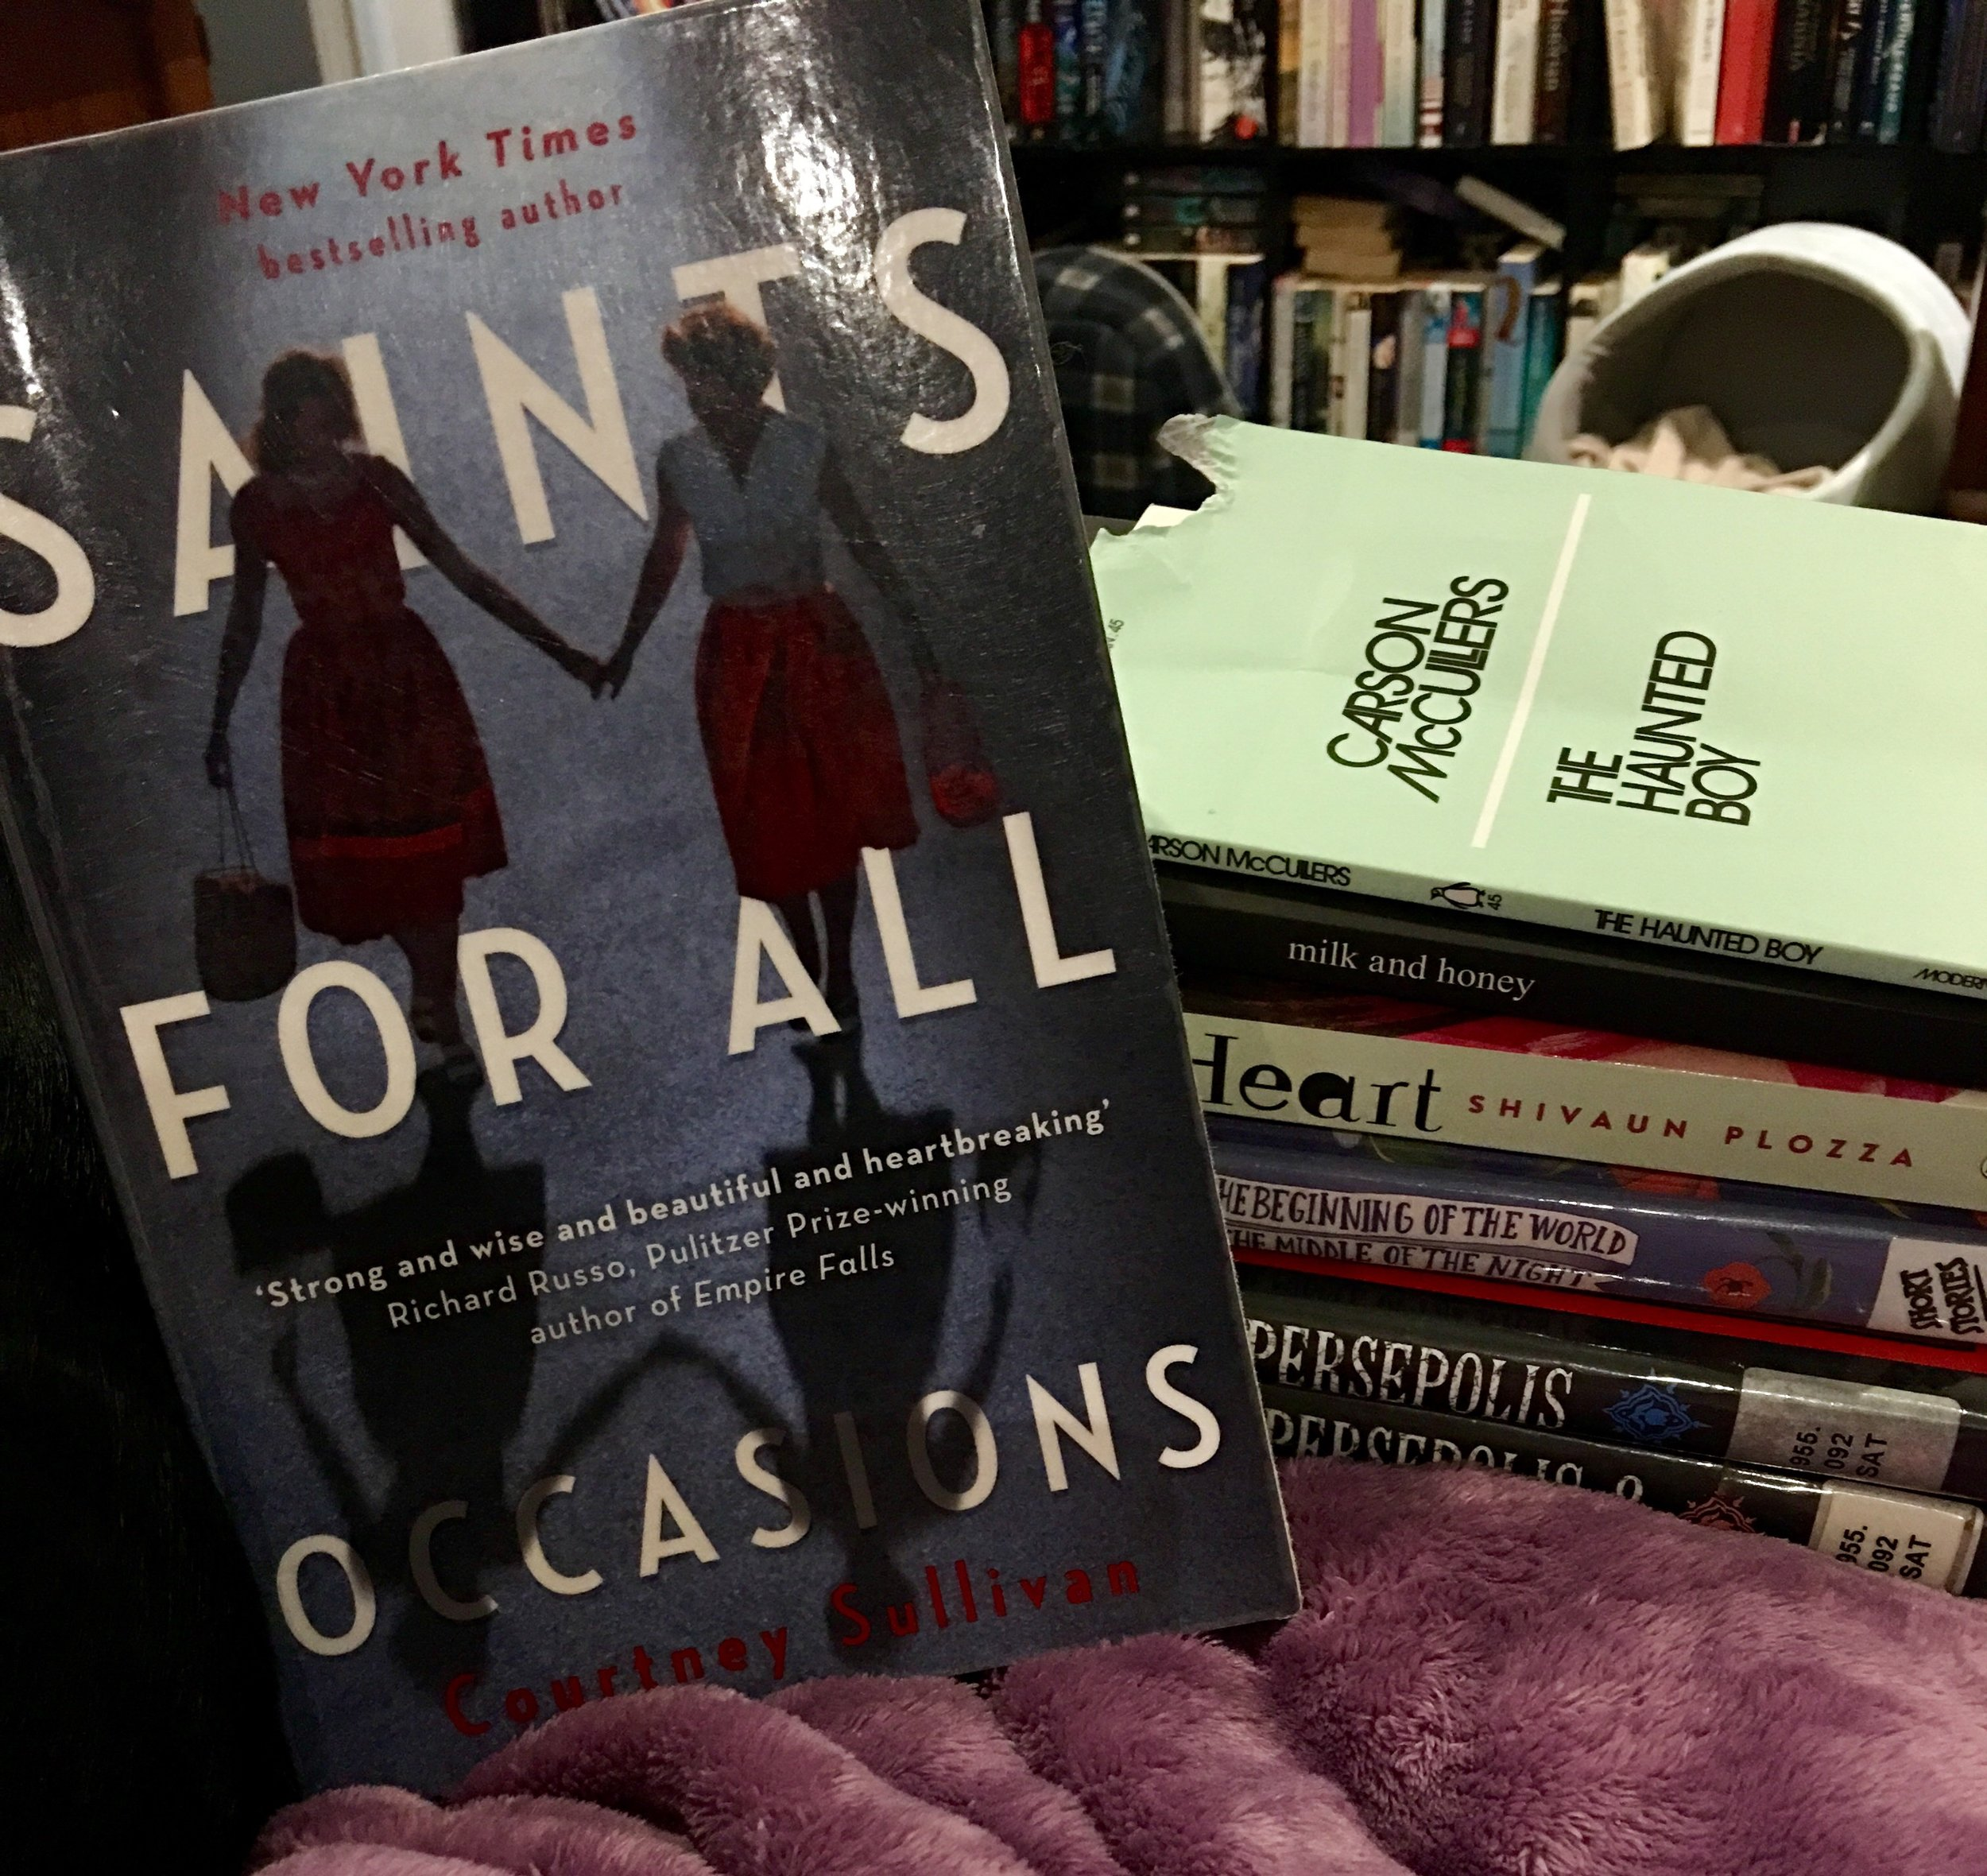 saints for all occasions tbr.jpg